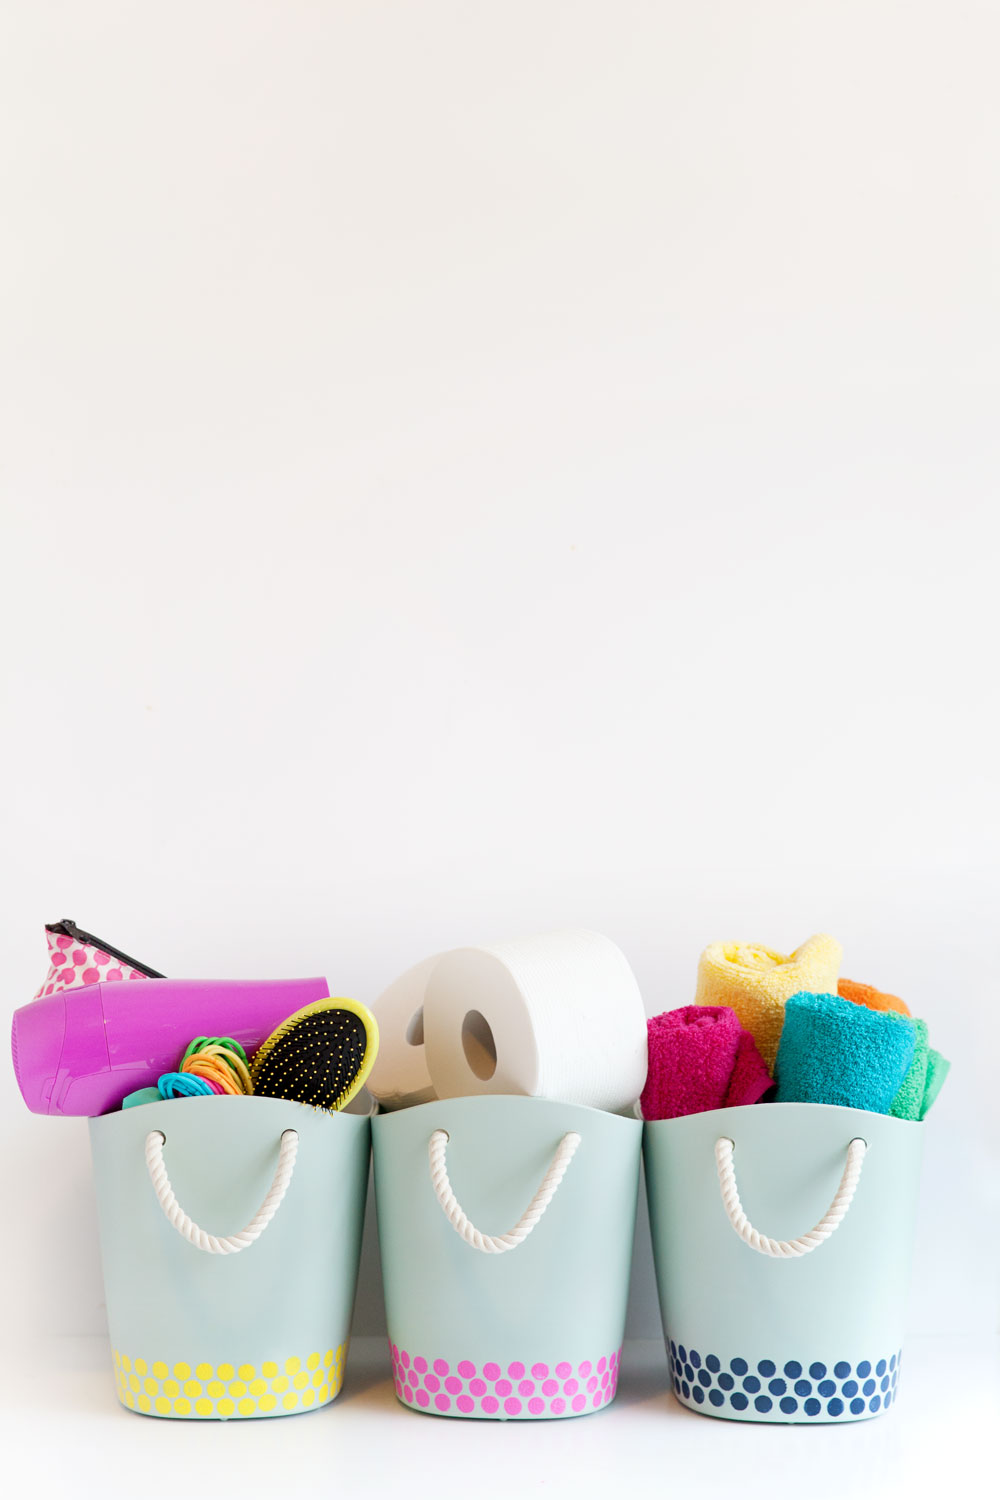 A-fun-bathroom-storage-DIY-and-tips-to-keeping-an-organized-bathroom